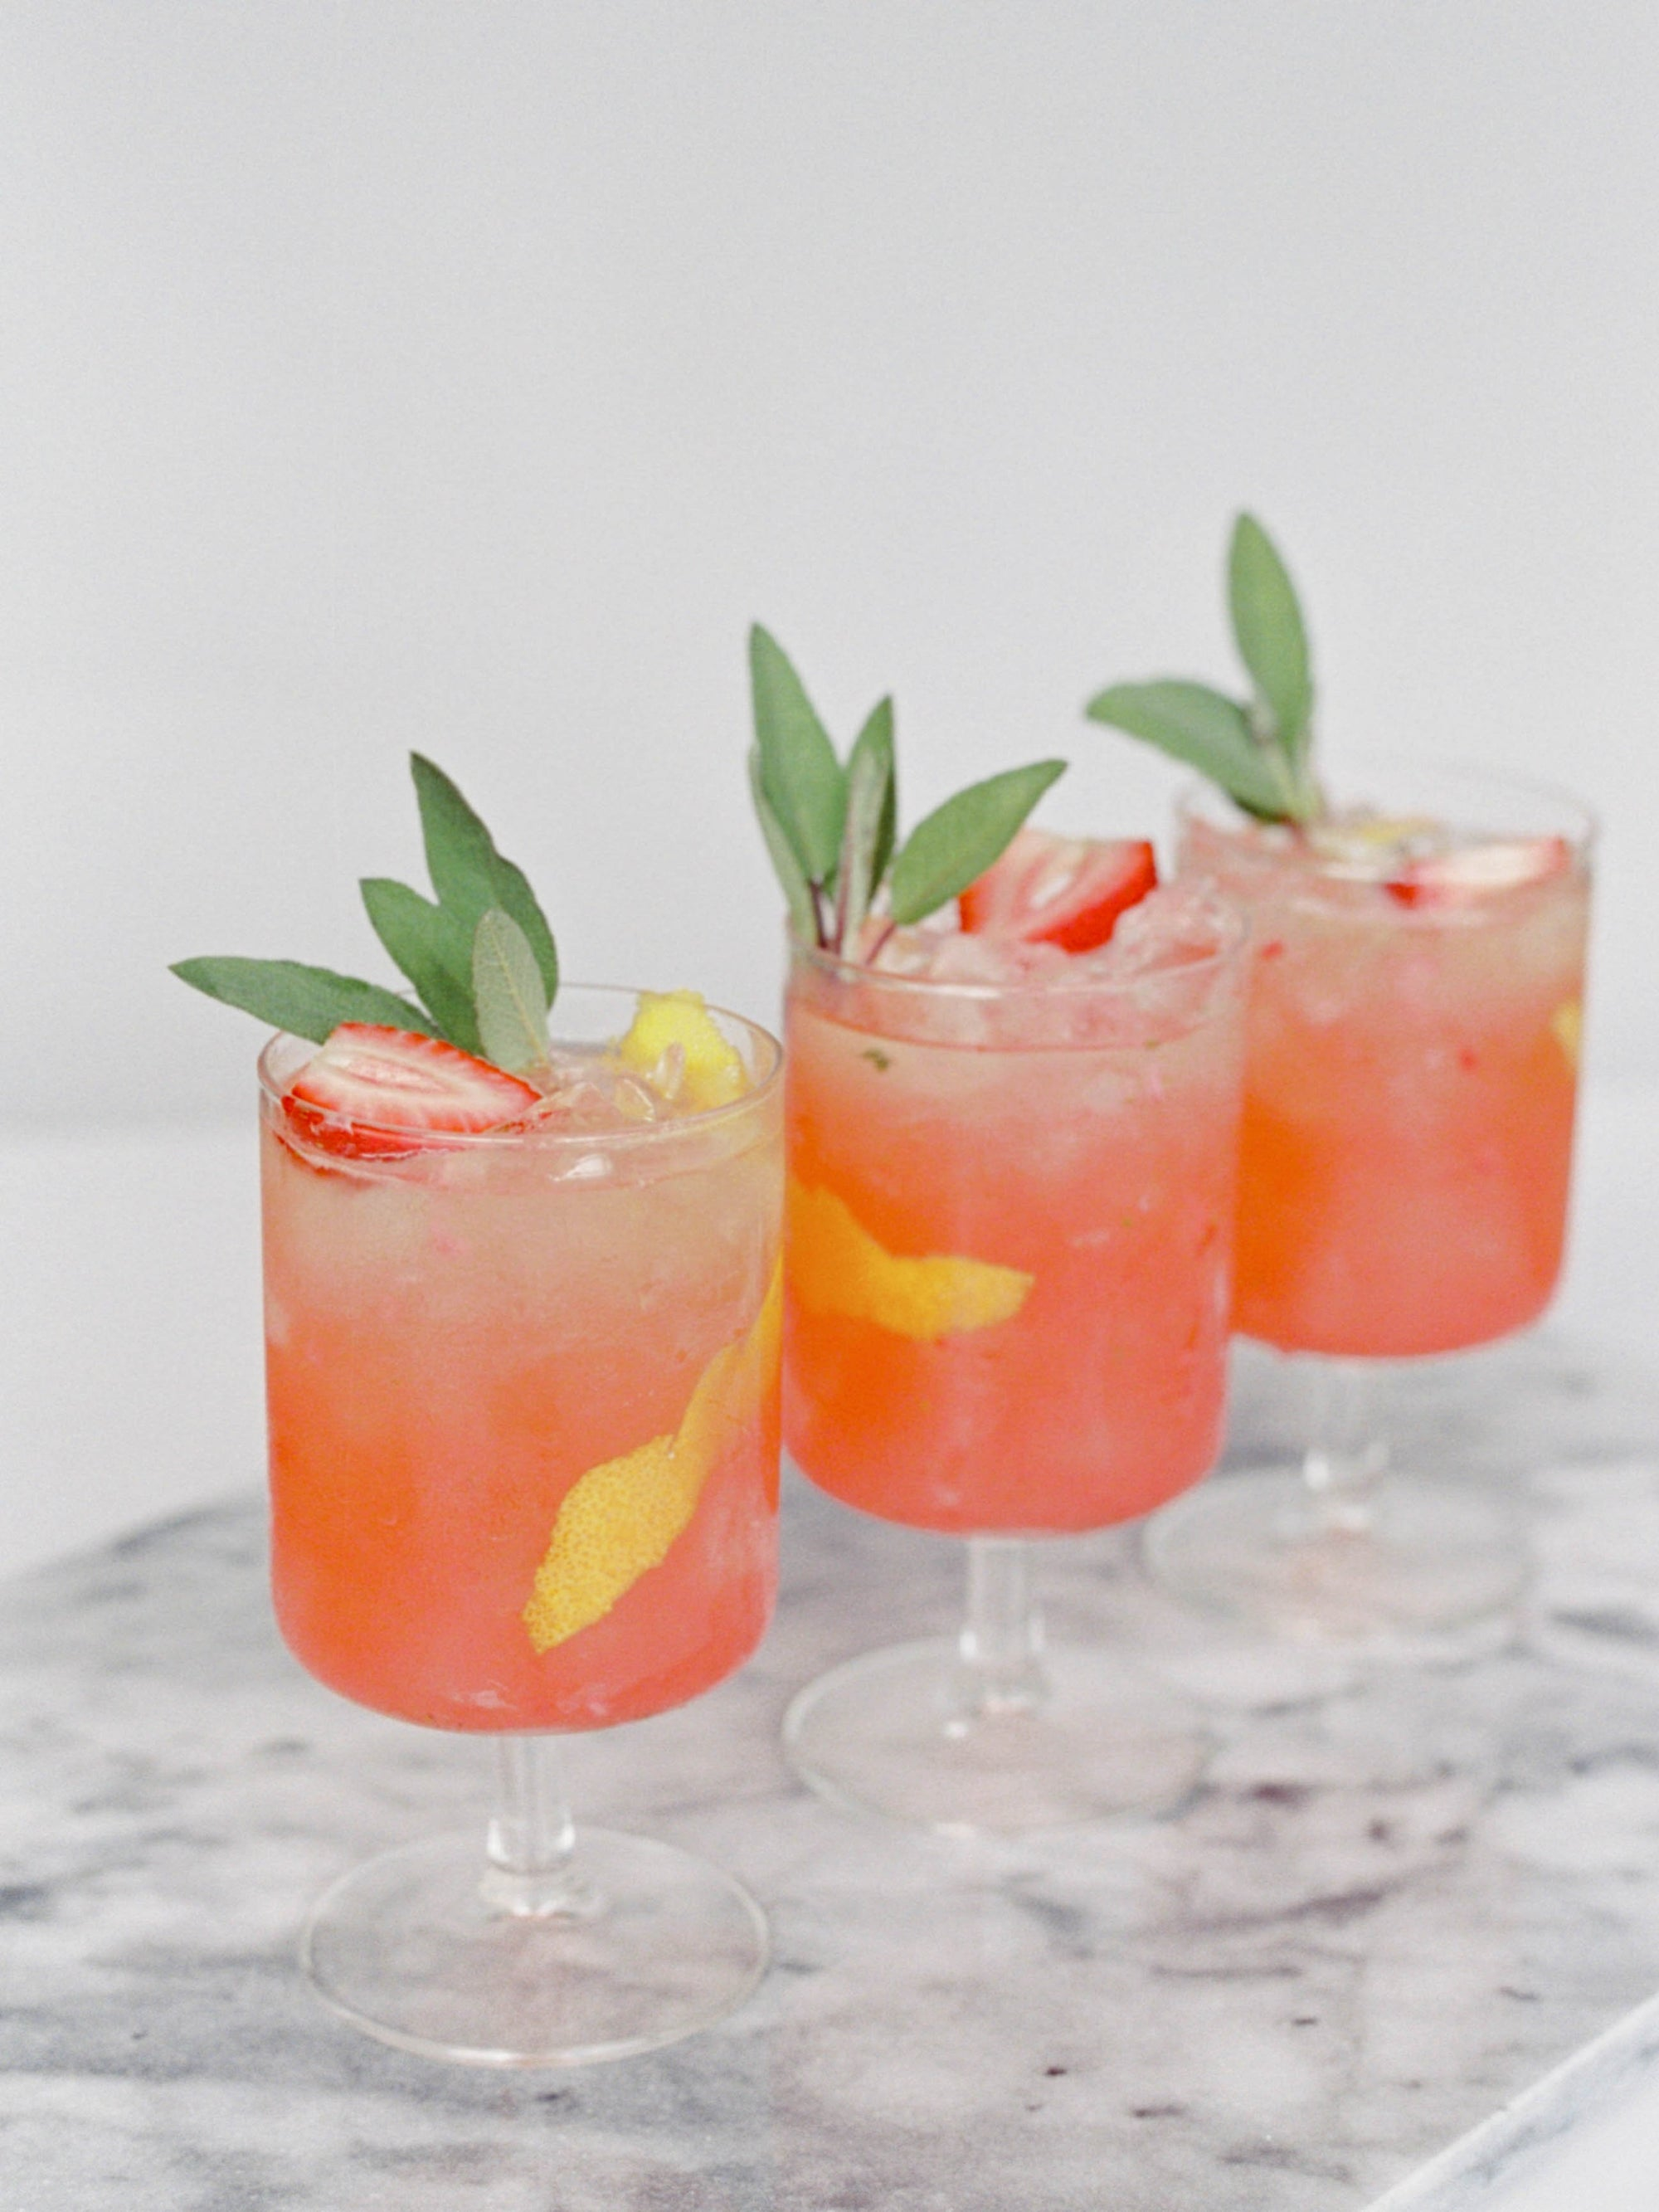 The Drink You'll Crave All Summer: Strawberry, Rhubarb & Vanilla Collins